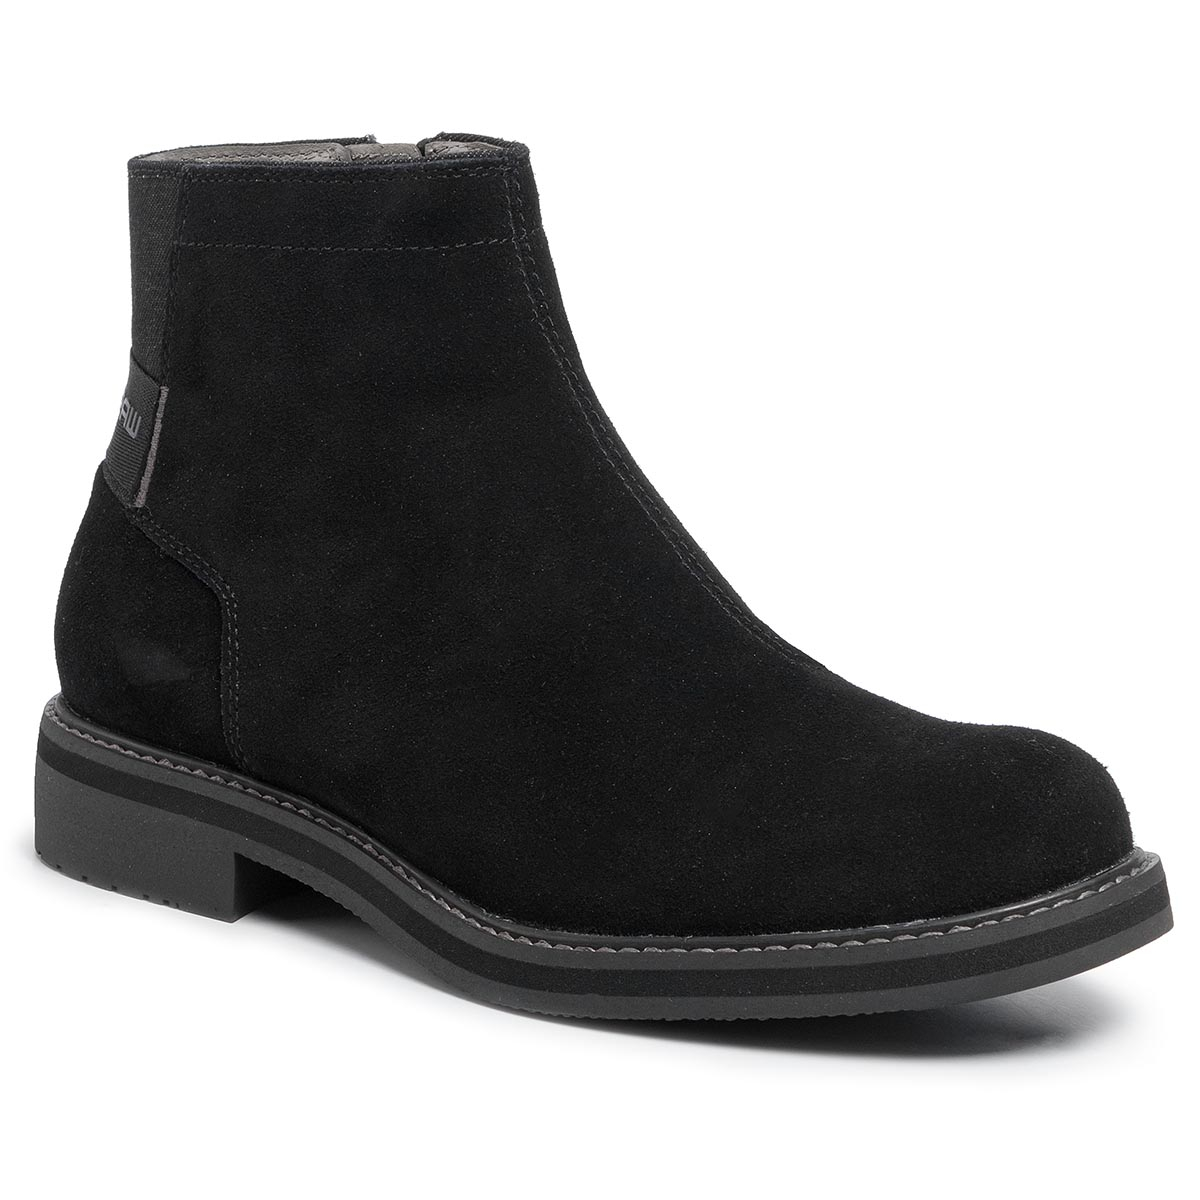 Ghete G-Star Raw - Garber D14214-8688-990 Black imagine